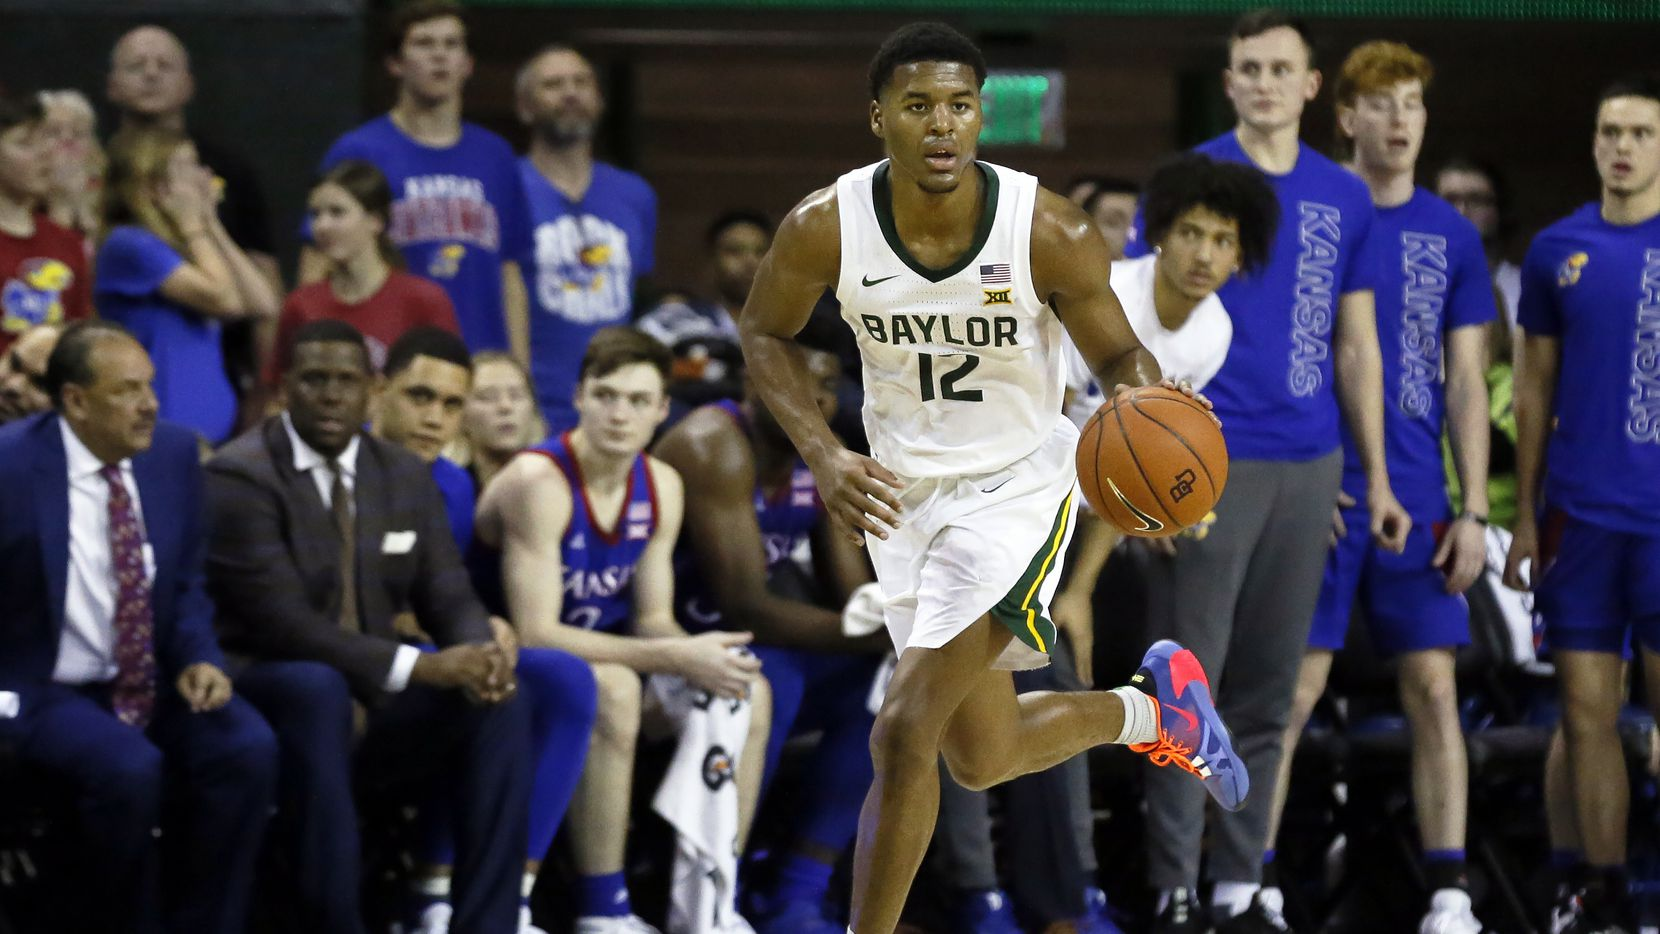 FILE - Baylor guard Jared Butler dribbles up court against Kansas during an NCAA college basketball game in Waco, Texas, in this Feb. 22, 2020, file photo. Baylor opens this season only one poll point behind top-ranked Gonzaga in in the AP Top 25.  (AP Photo/Ray Carlin, File)